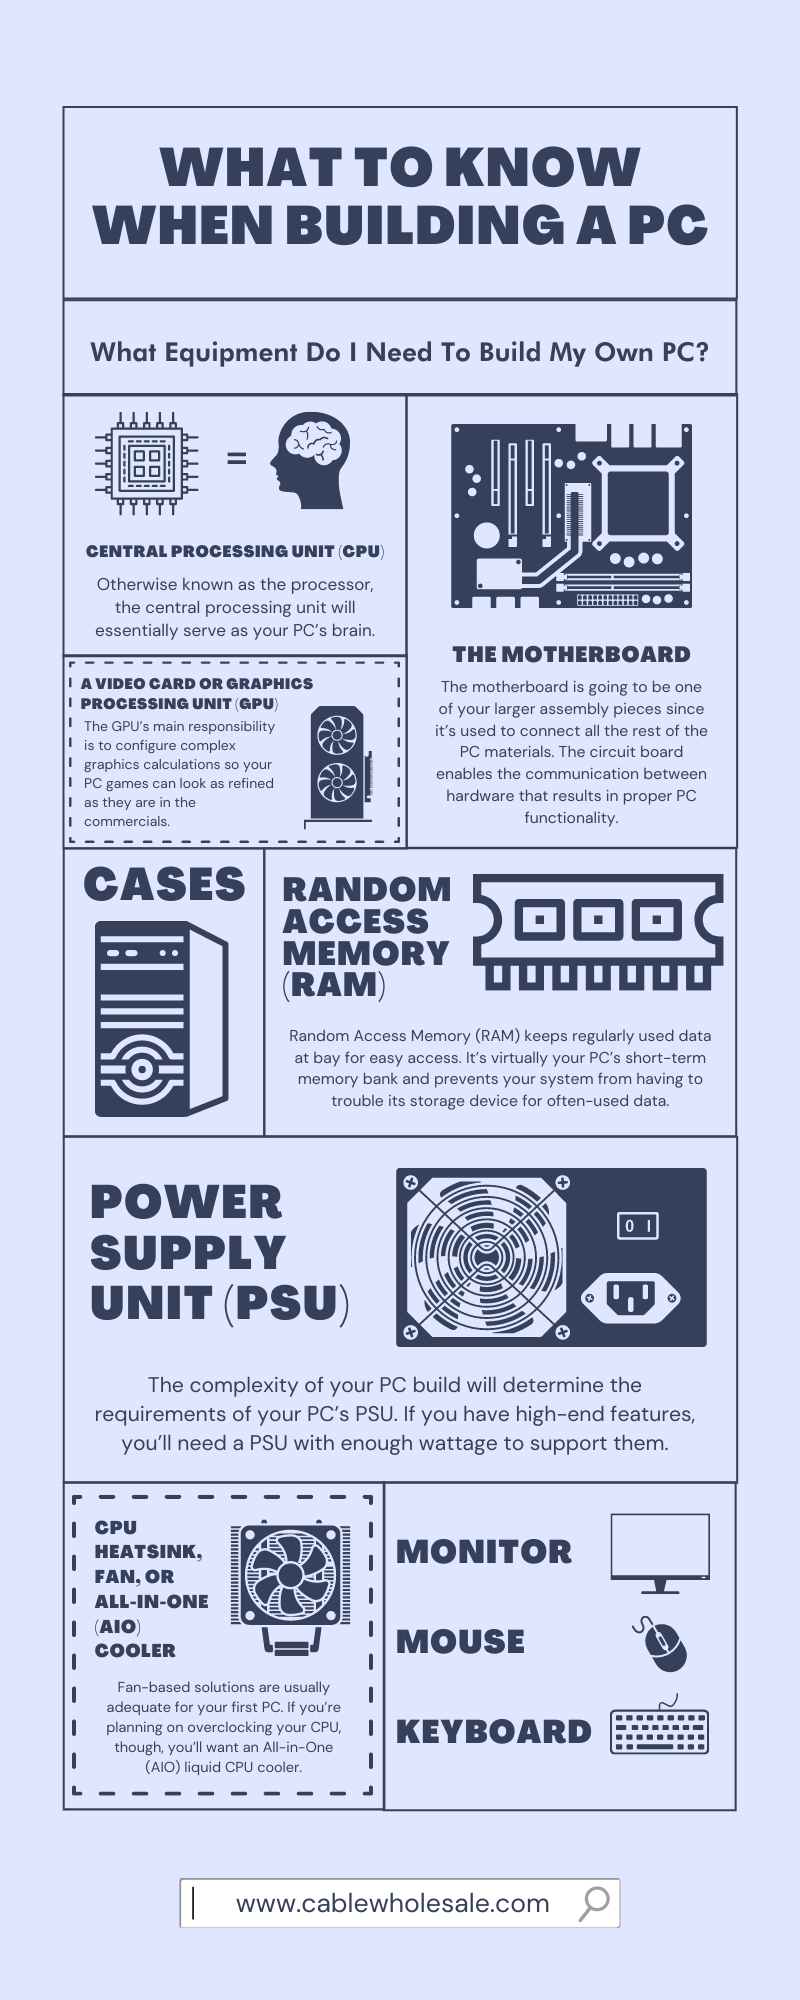 What To Know When Building a PC